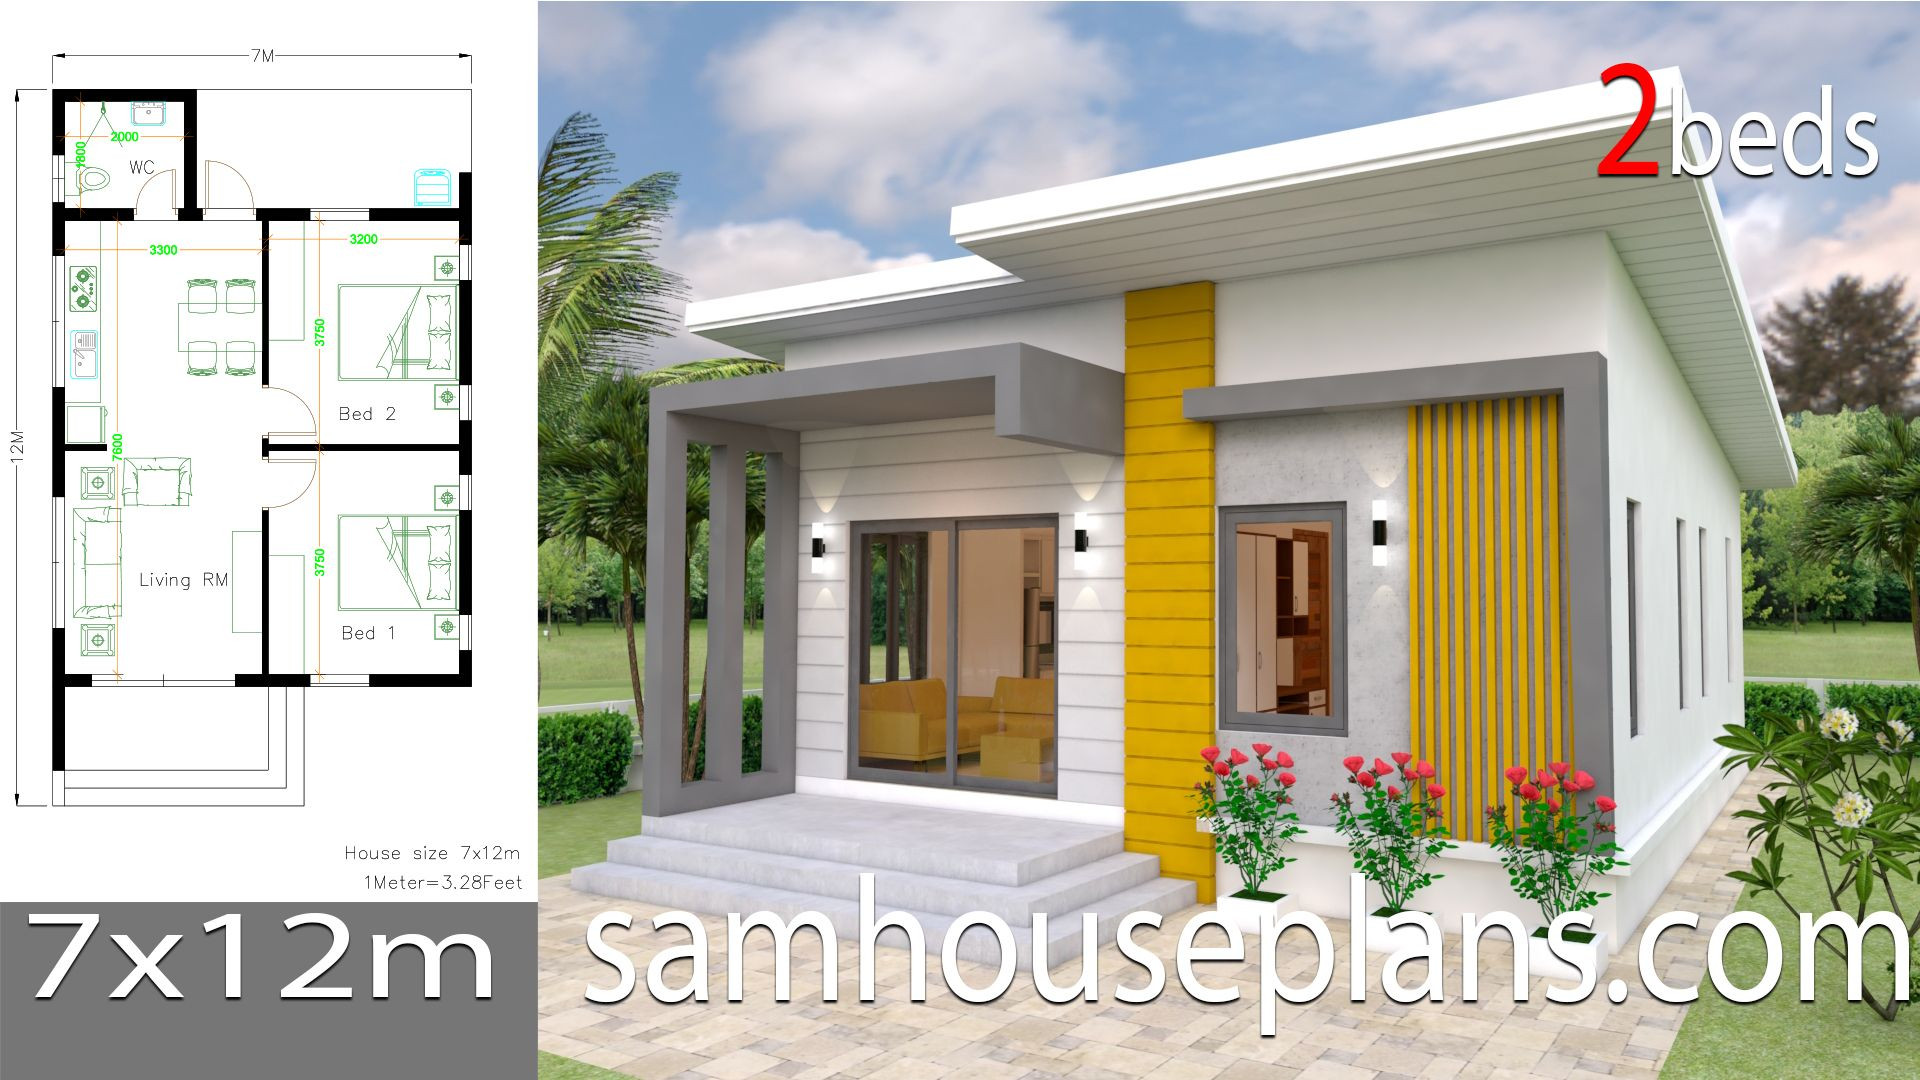 Small House Design Plans 7x12 With 2 Bedrooms Full Plans House Plans 3d Small House Design Small House Design Plans House Design